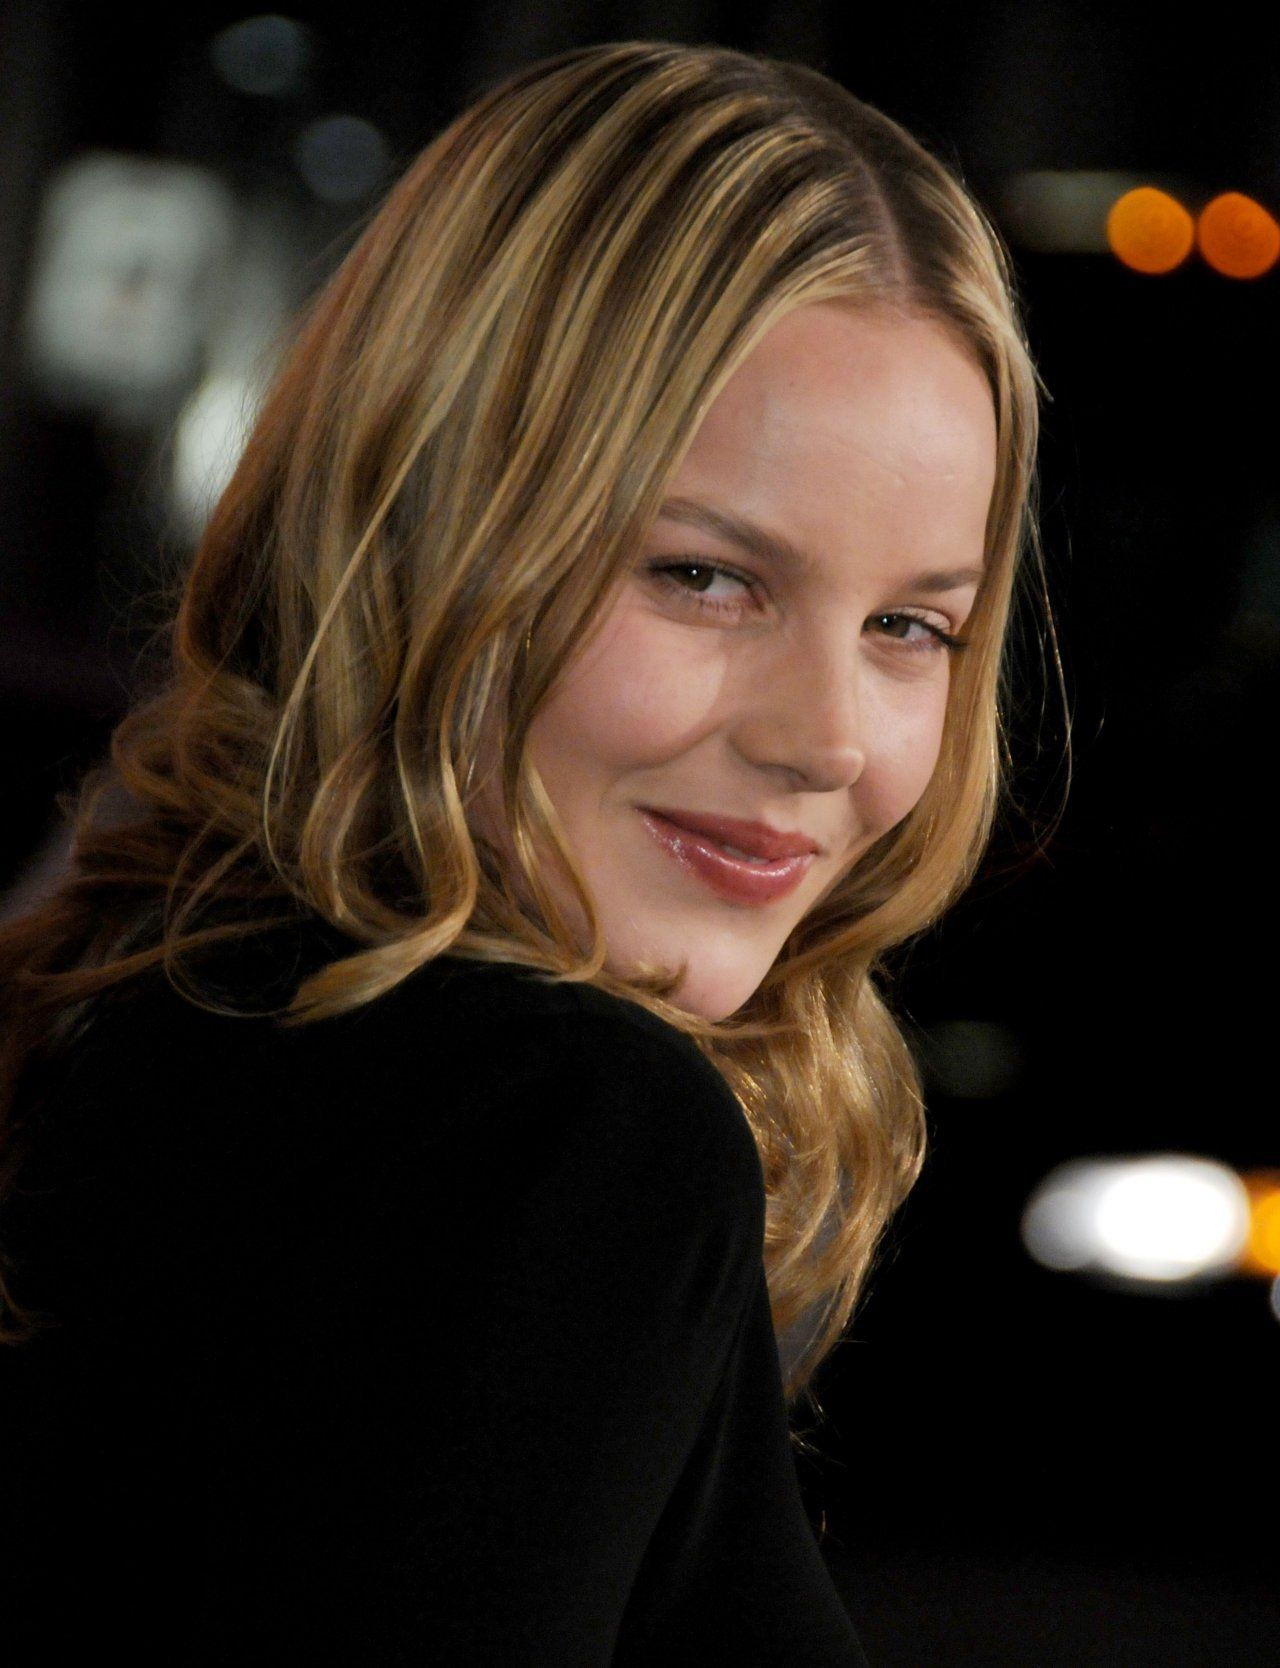 Celebrity Abbie Cornish nudes (74 foto and video), Pussy, Cleavage, Instagram, underwear 2020